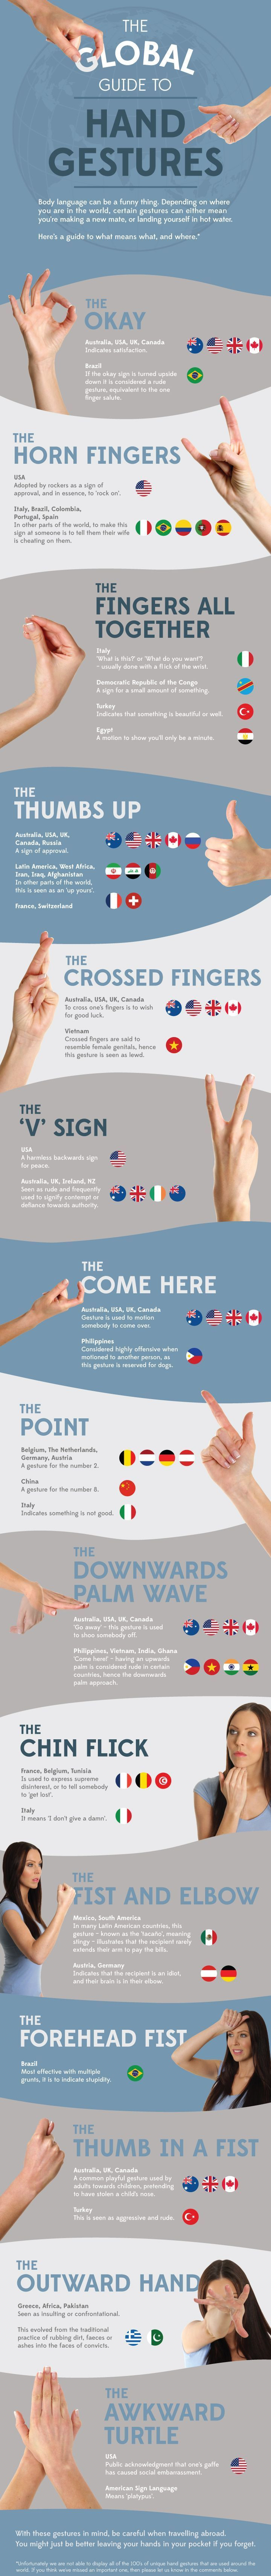 The World's Guide to Hand Gestures. RePin this  to anyone traveling to avoid embarrassing situations abroad.  http://www.luggagefactory.com/delsey-luggage